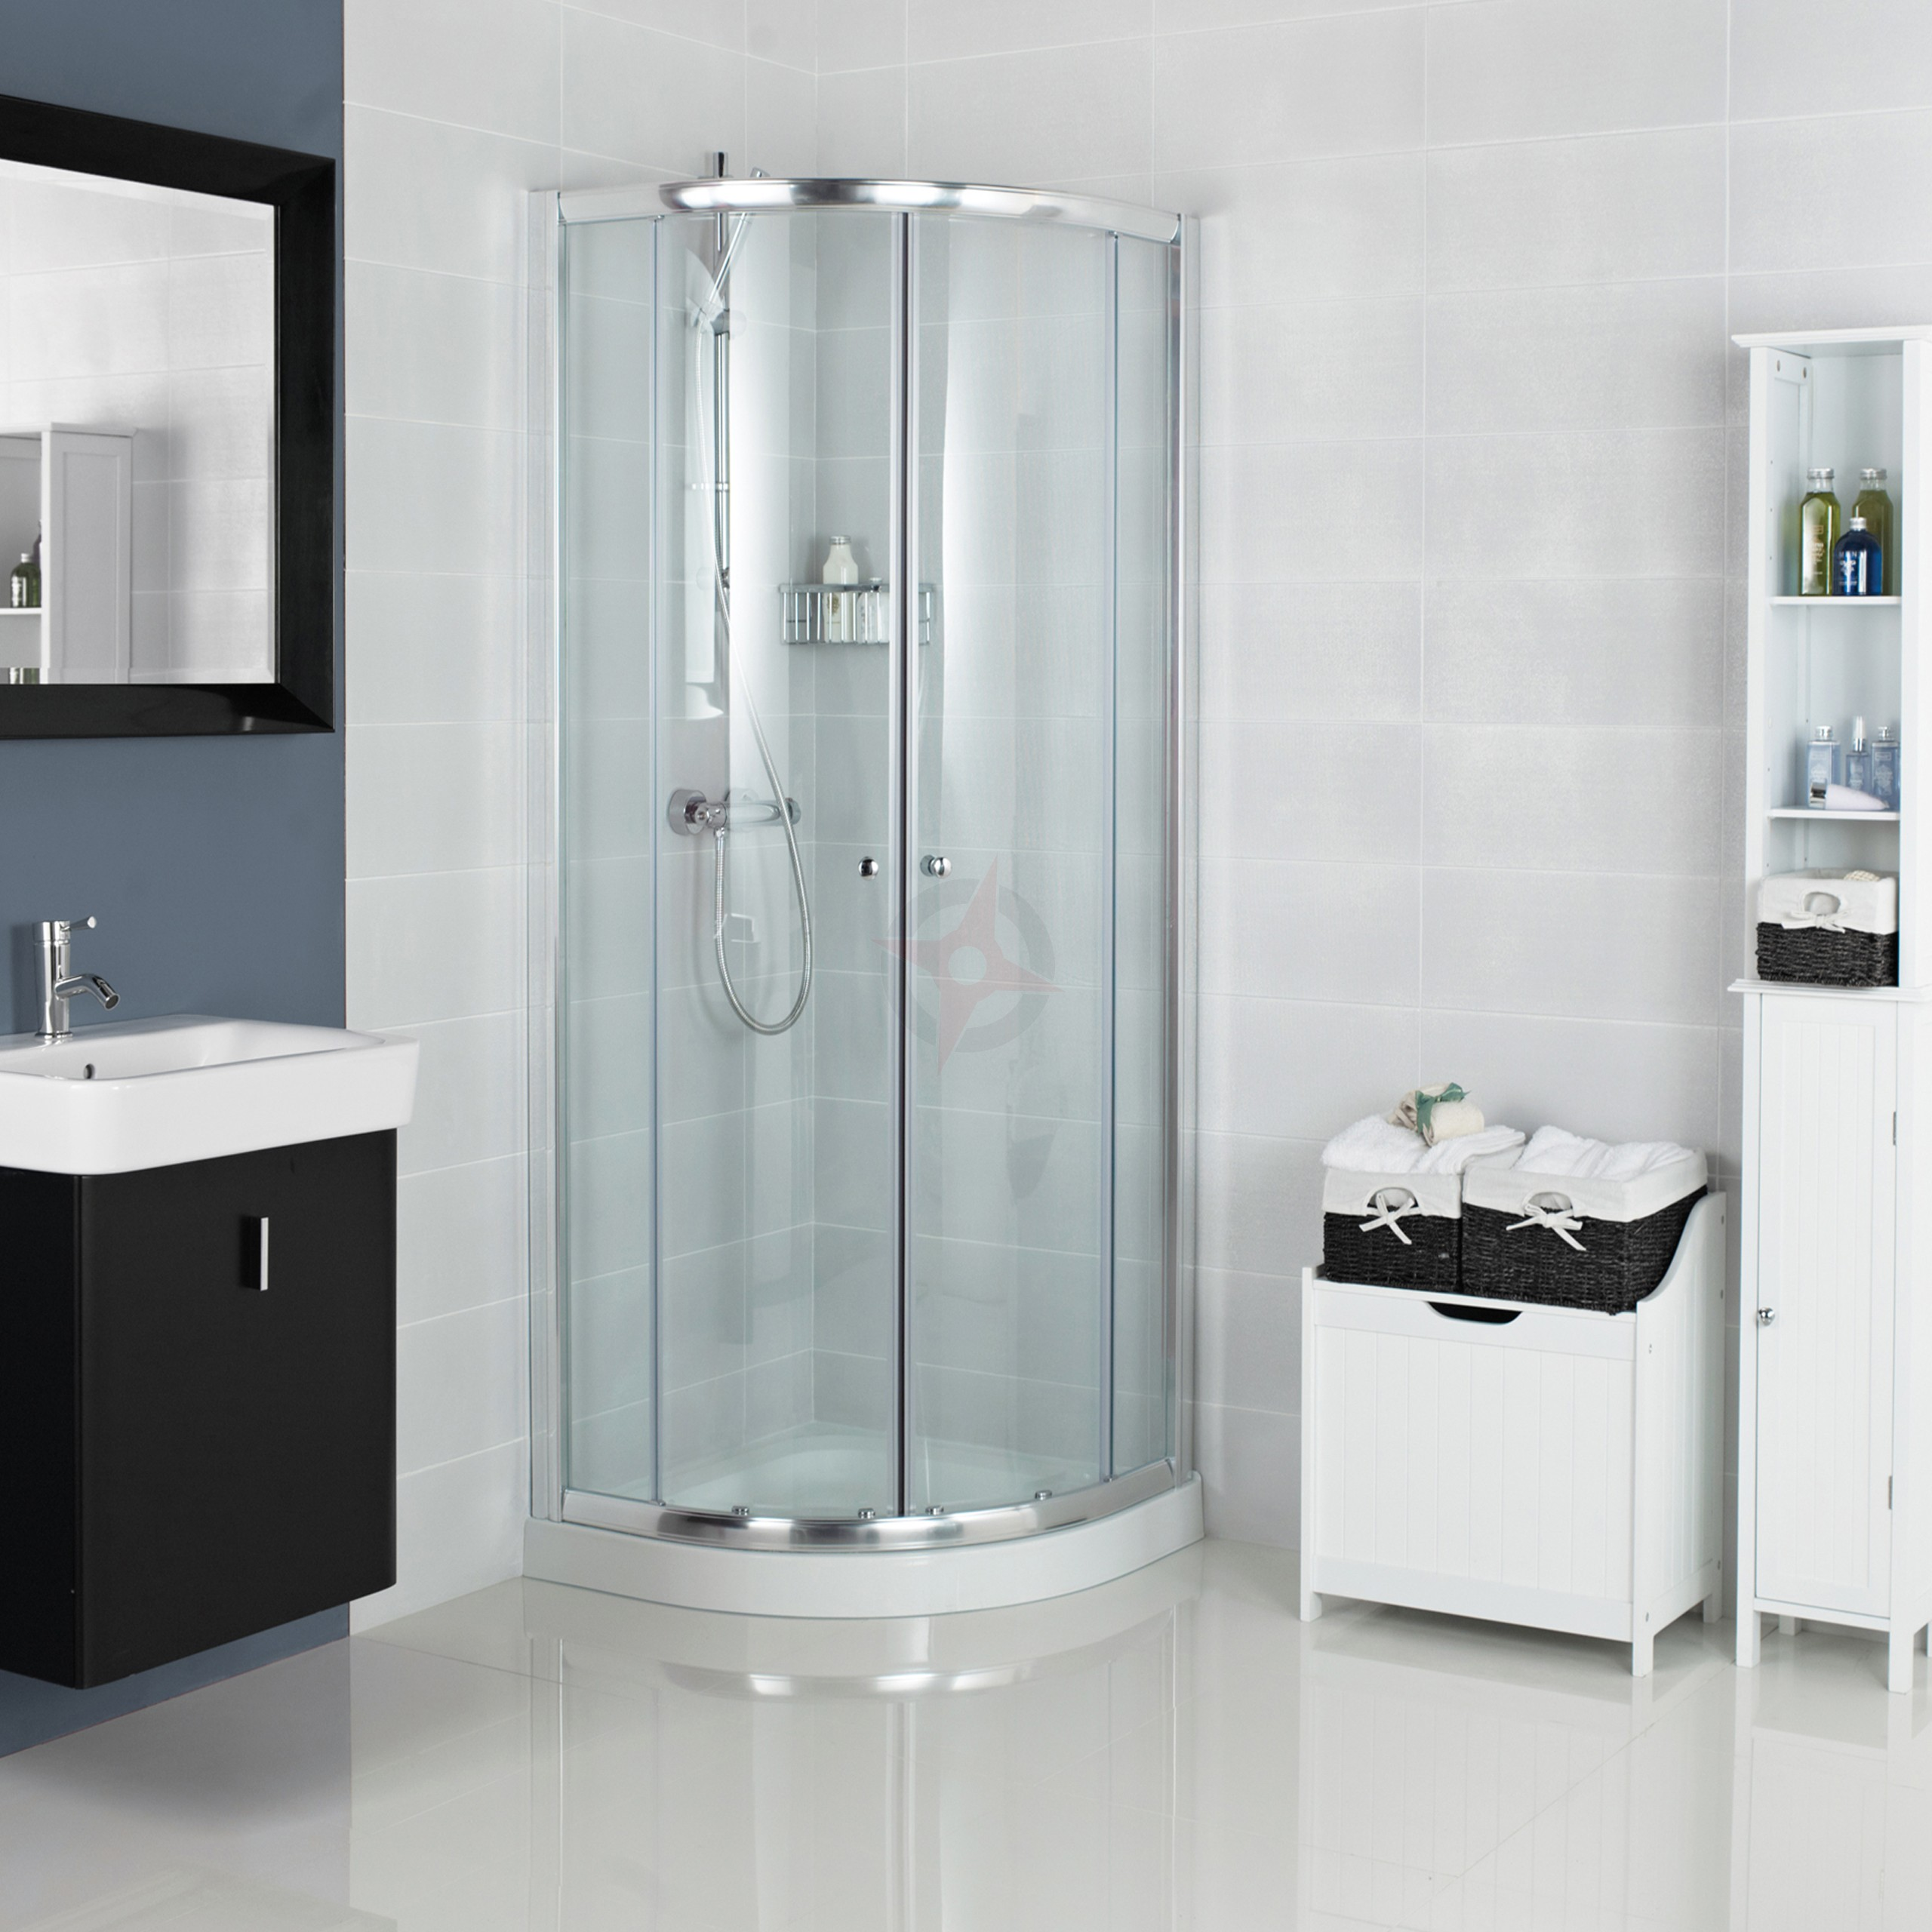 Haven Plus H3 900mm x 900mm 2 Door Quadrant Shower Enclosure c/w ...